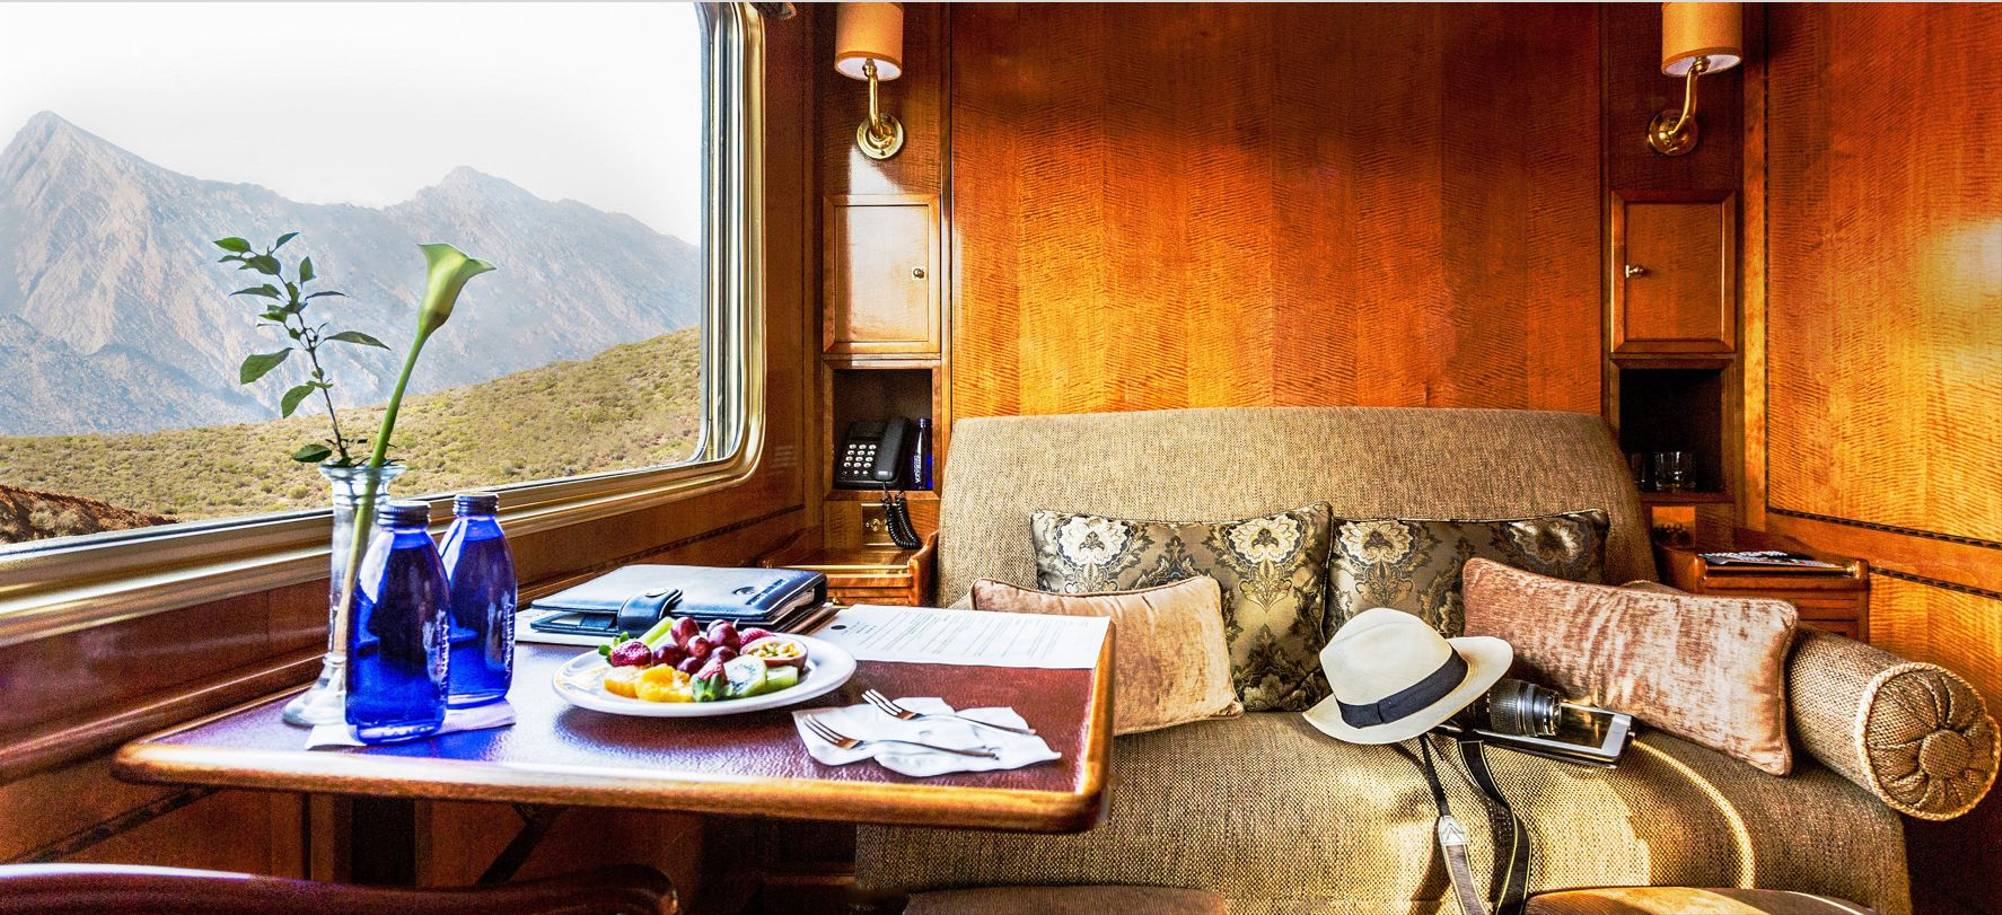 Blue Train   Cabin   Itinerary Desktop